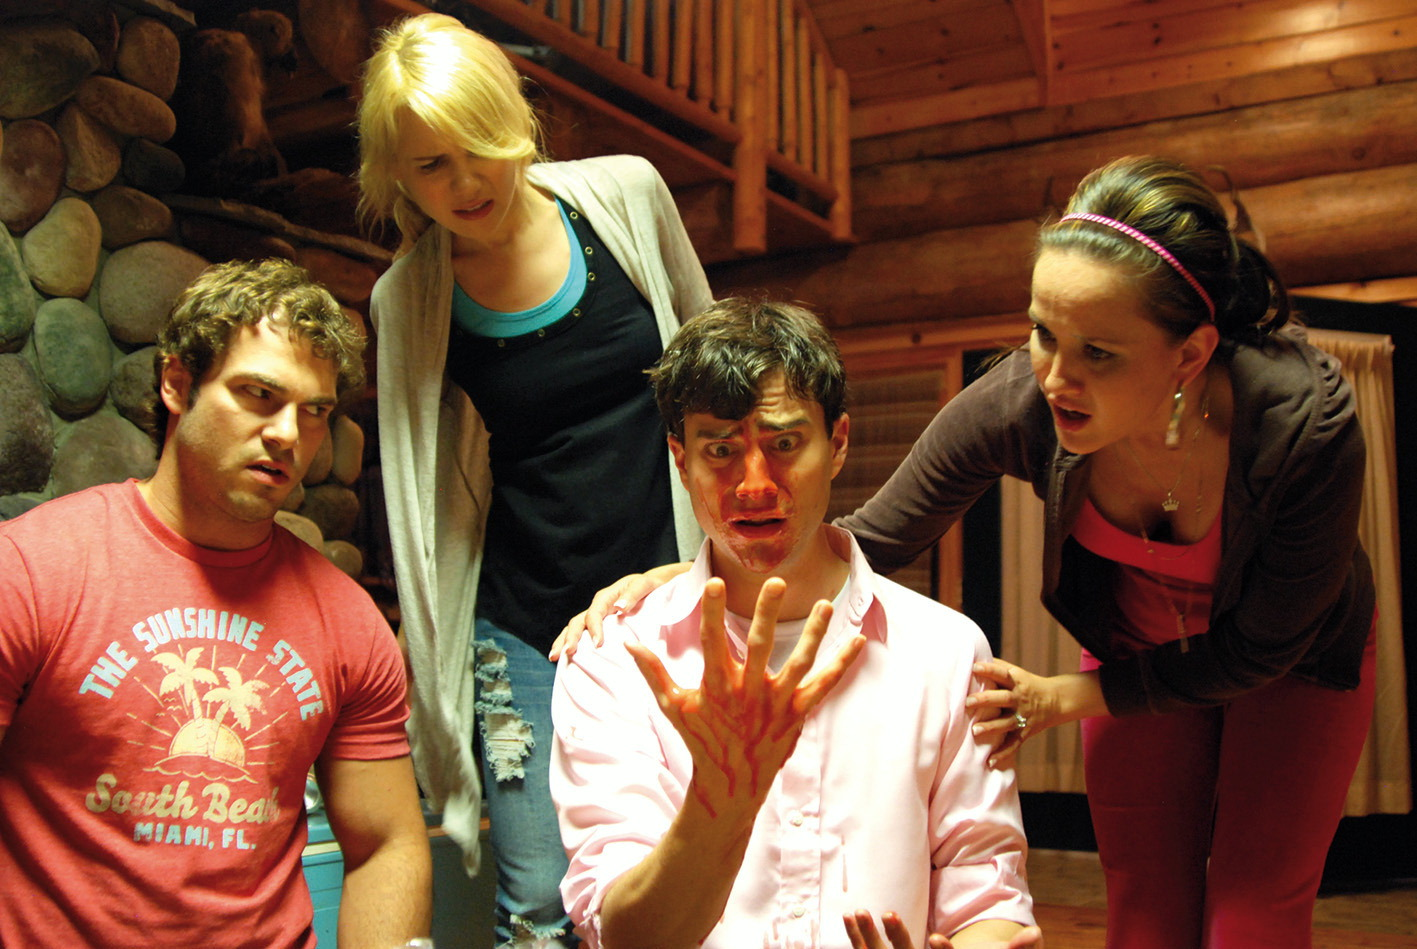 Best friend Shawn Roberts, sister Kristen Hager, the zombie infected groom Kristopher Turner and the fiancee Crystal Lowe in A Little Bit Zombie (2012)